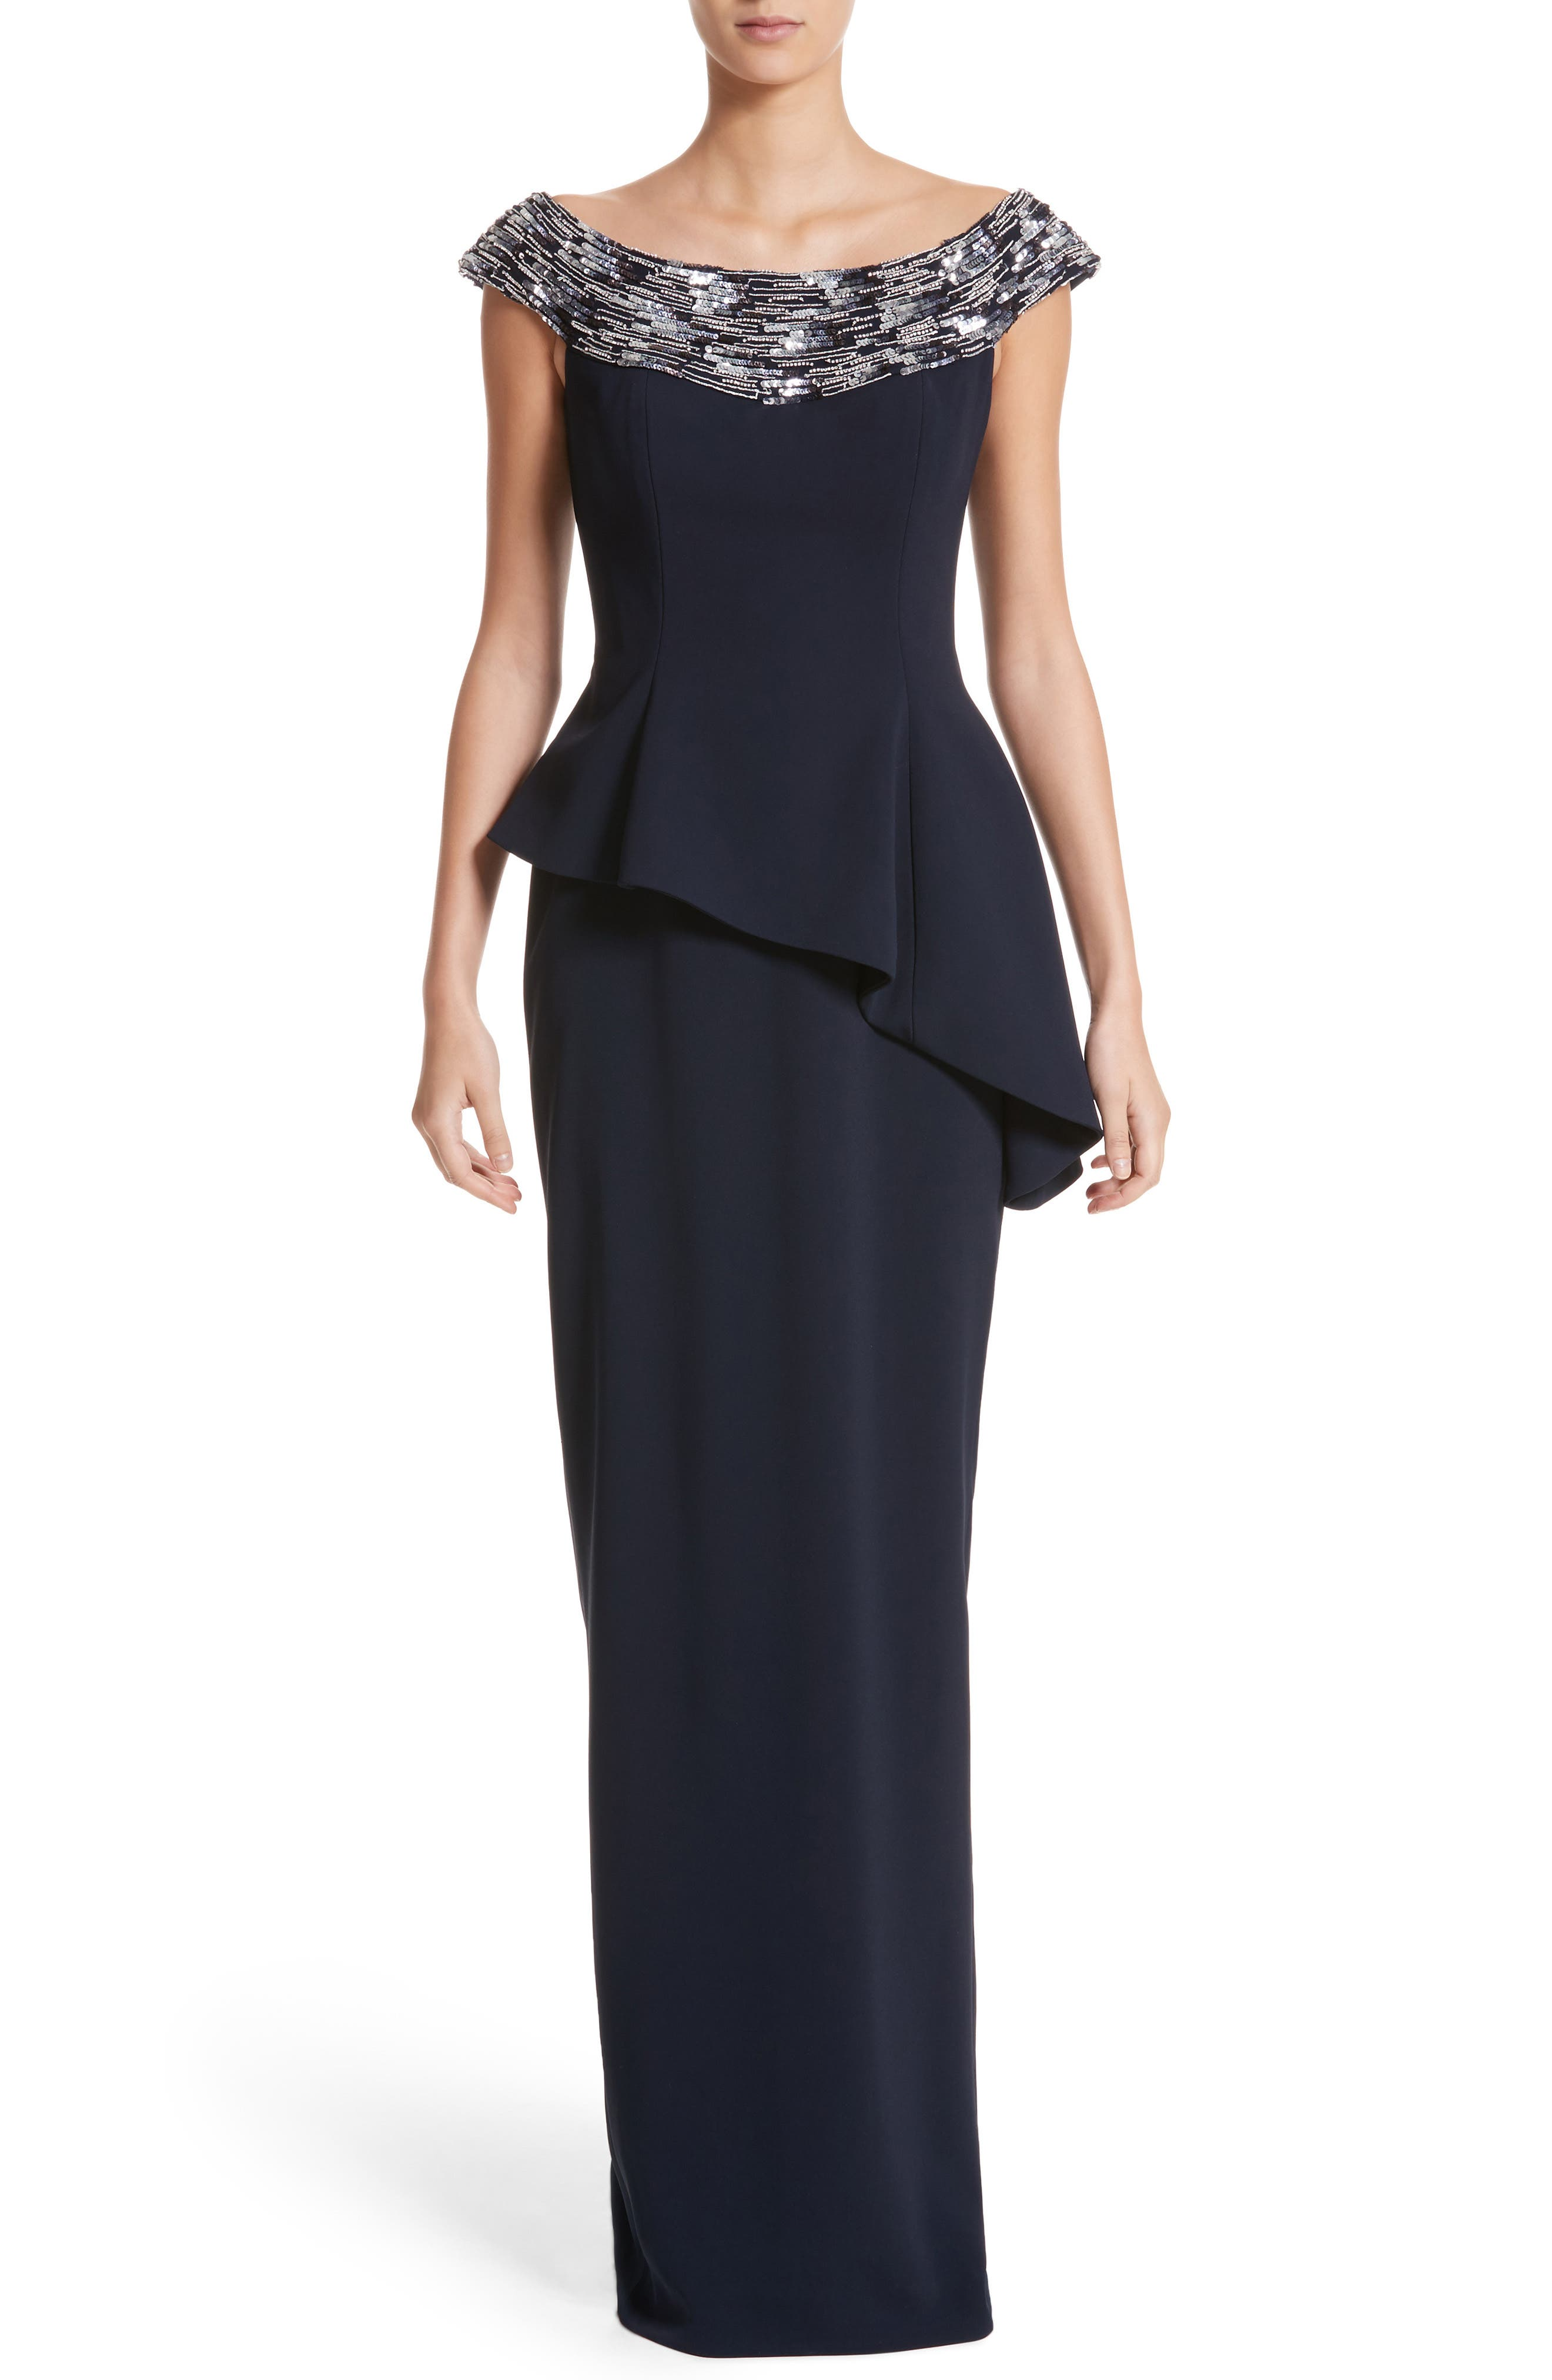 Embellished Off the Shoulder Peplum Gown,                         Main,                         color, Navy/ Black Navy Ombre